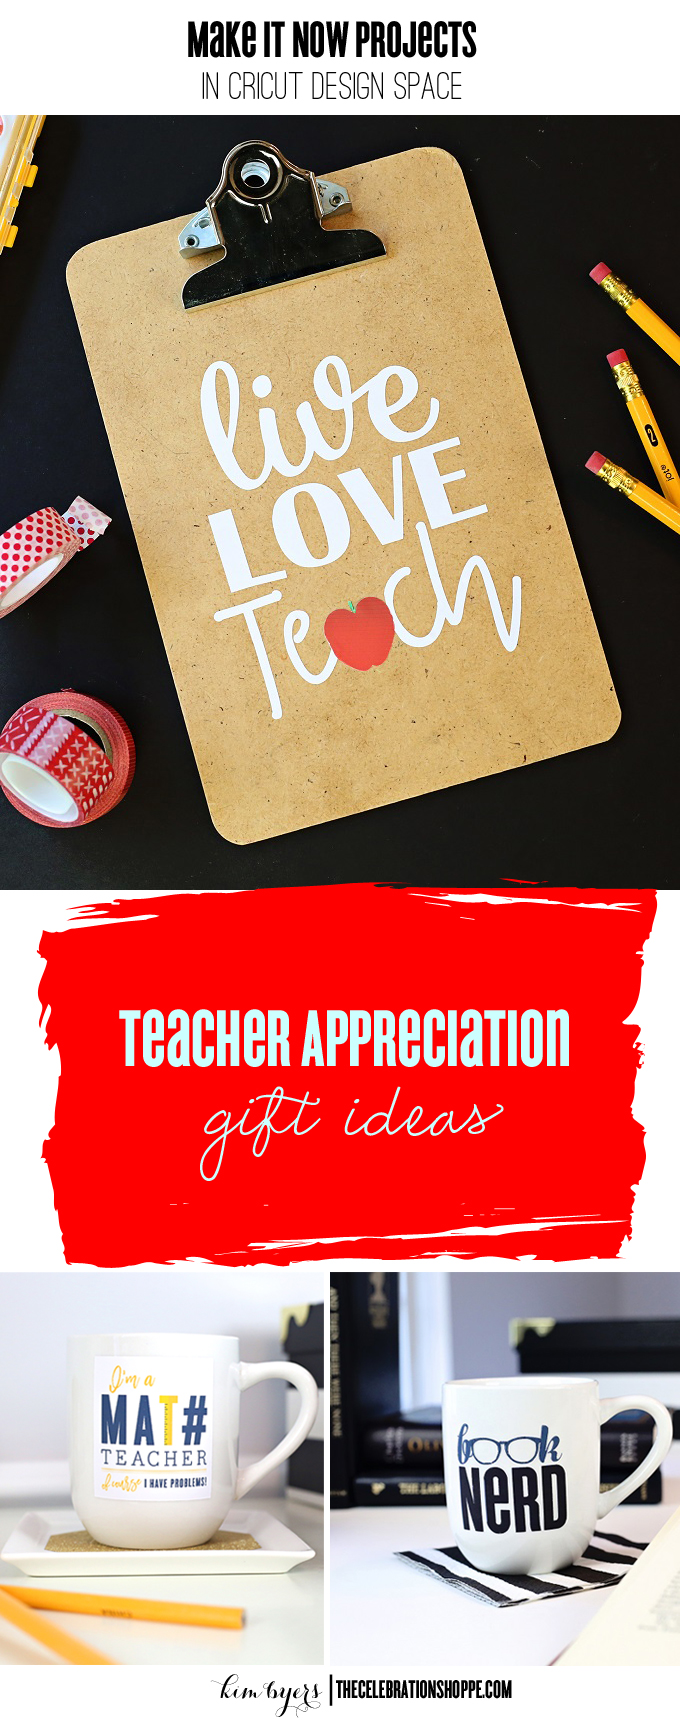 Cricut Teacher Appreciation Gifts | Kim Byers